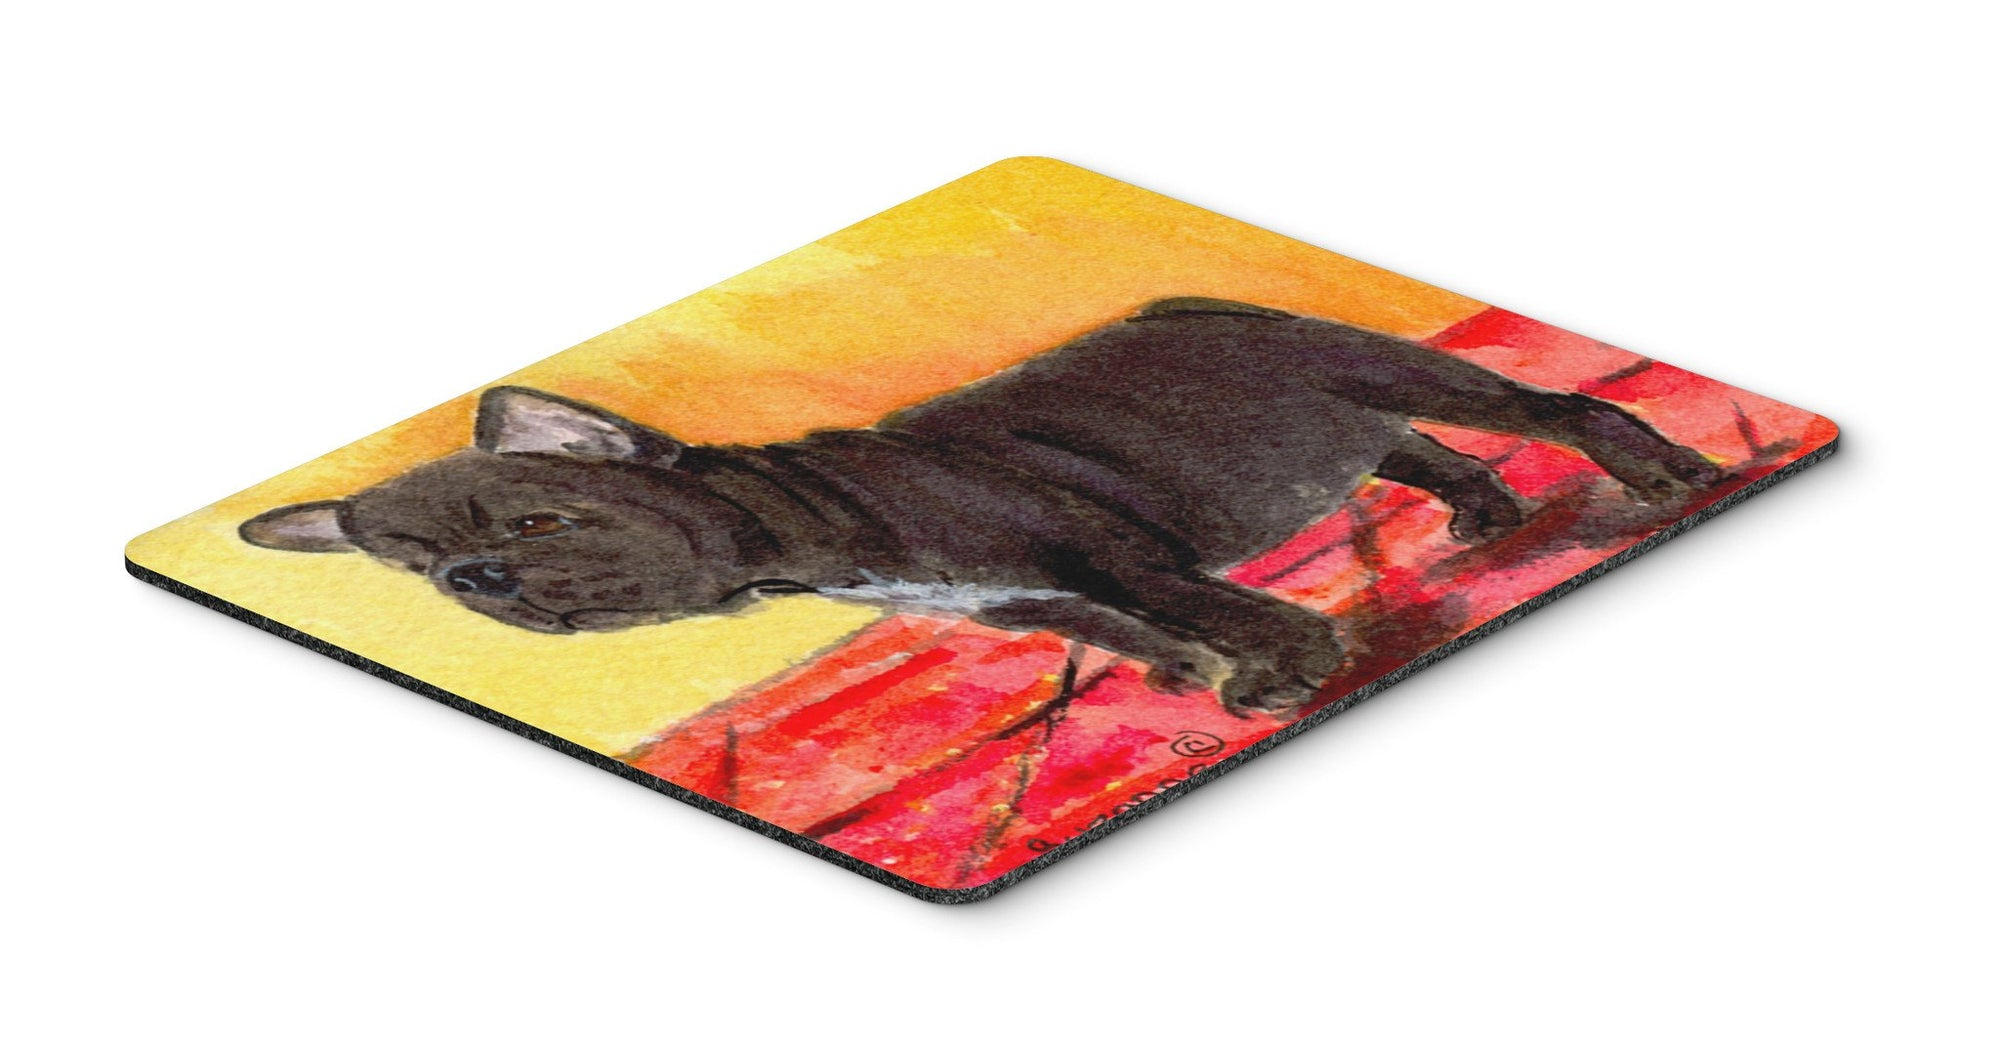 French Bulldog Mouse pad, hot pad, or trivet by Caroline's Treasures